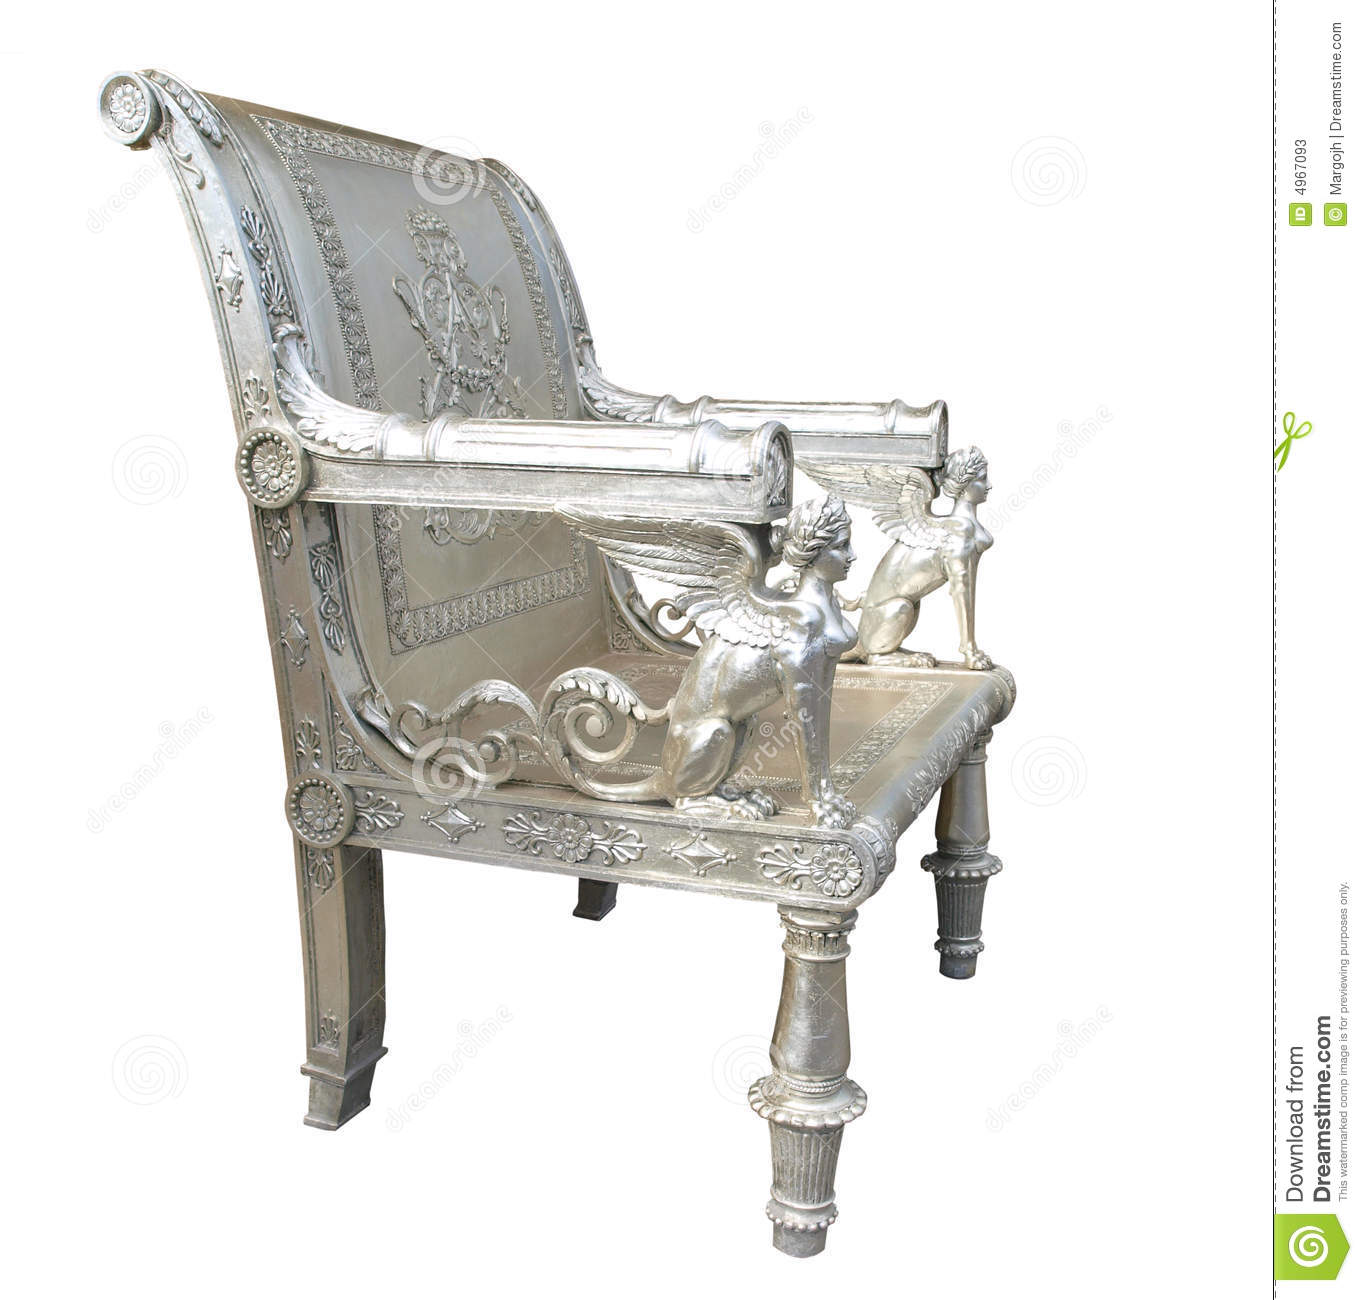 The silver chair illustrations - Egyptian